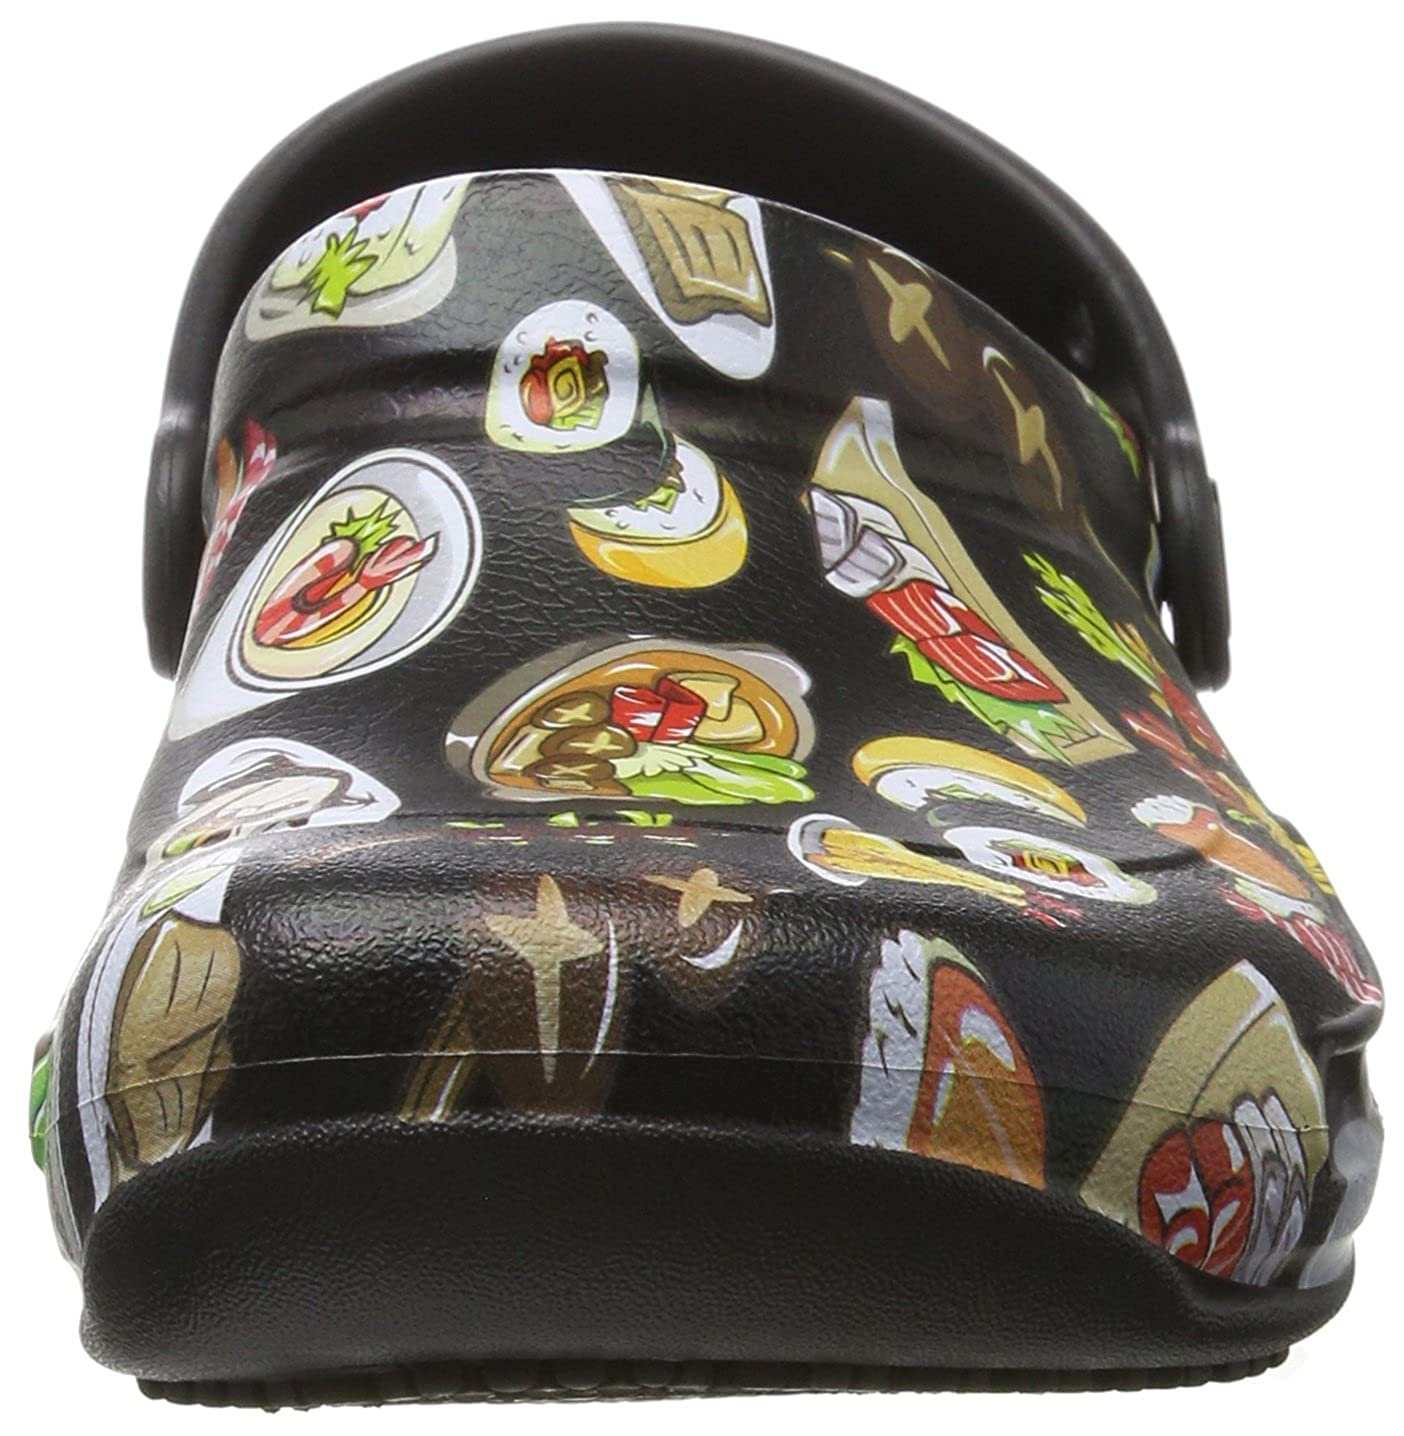 Sabots Mixte Adulte Crocs Bistro Graphic Clog